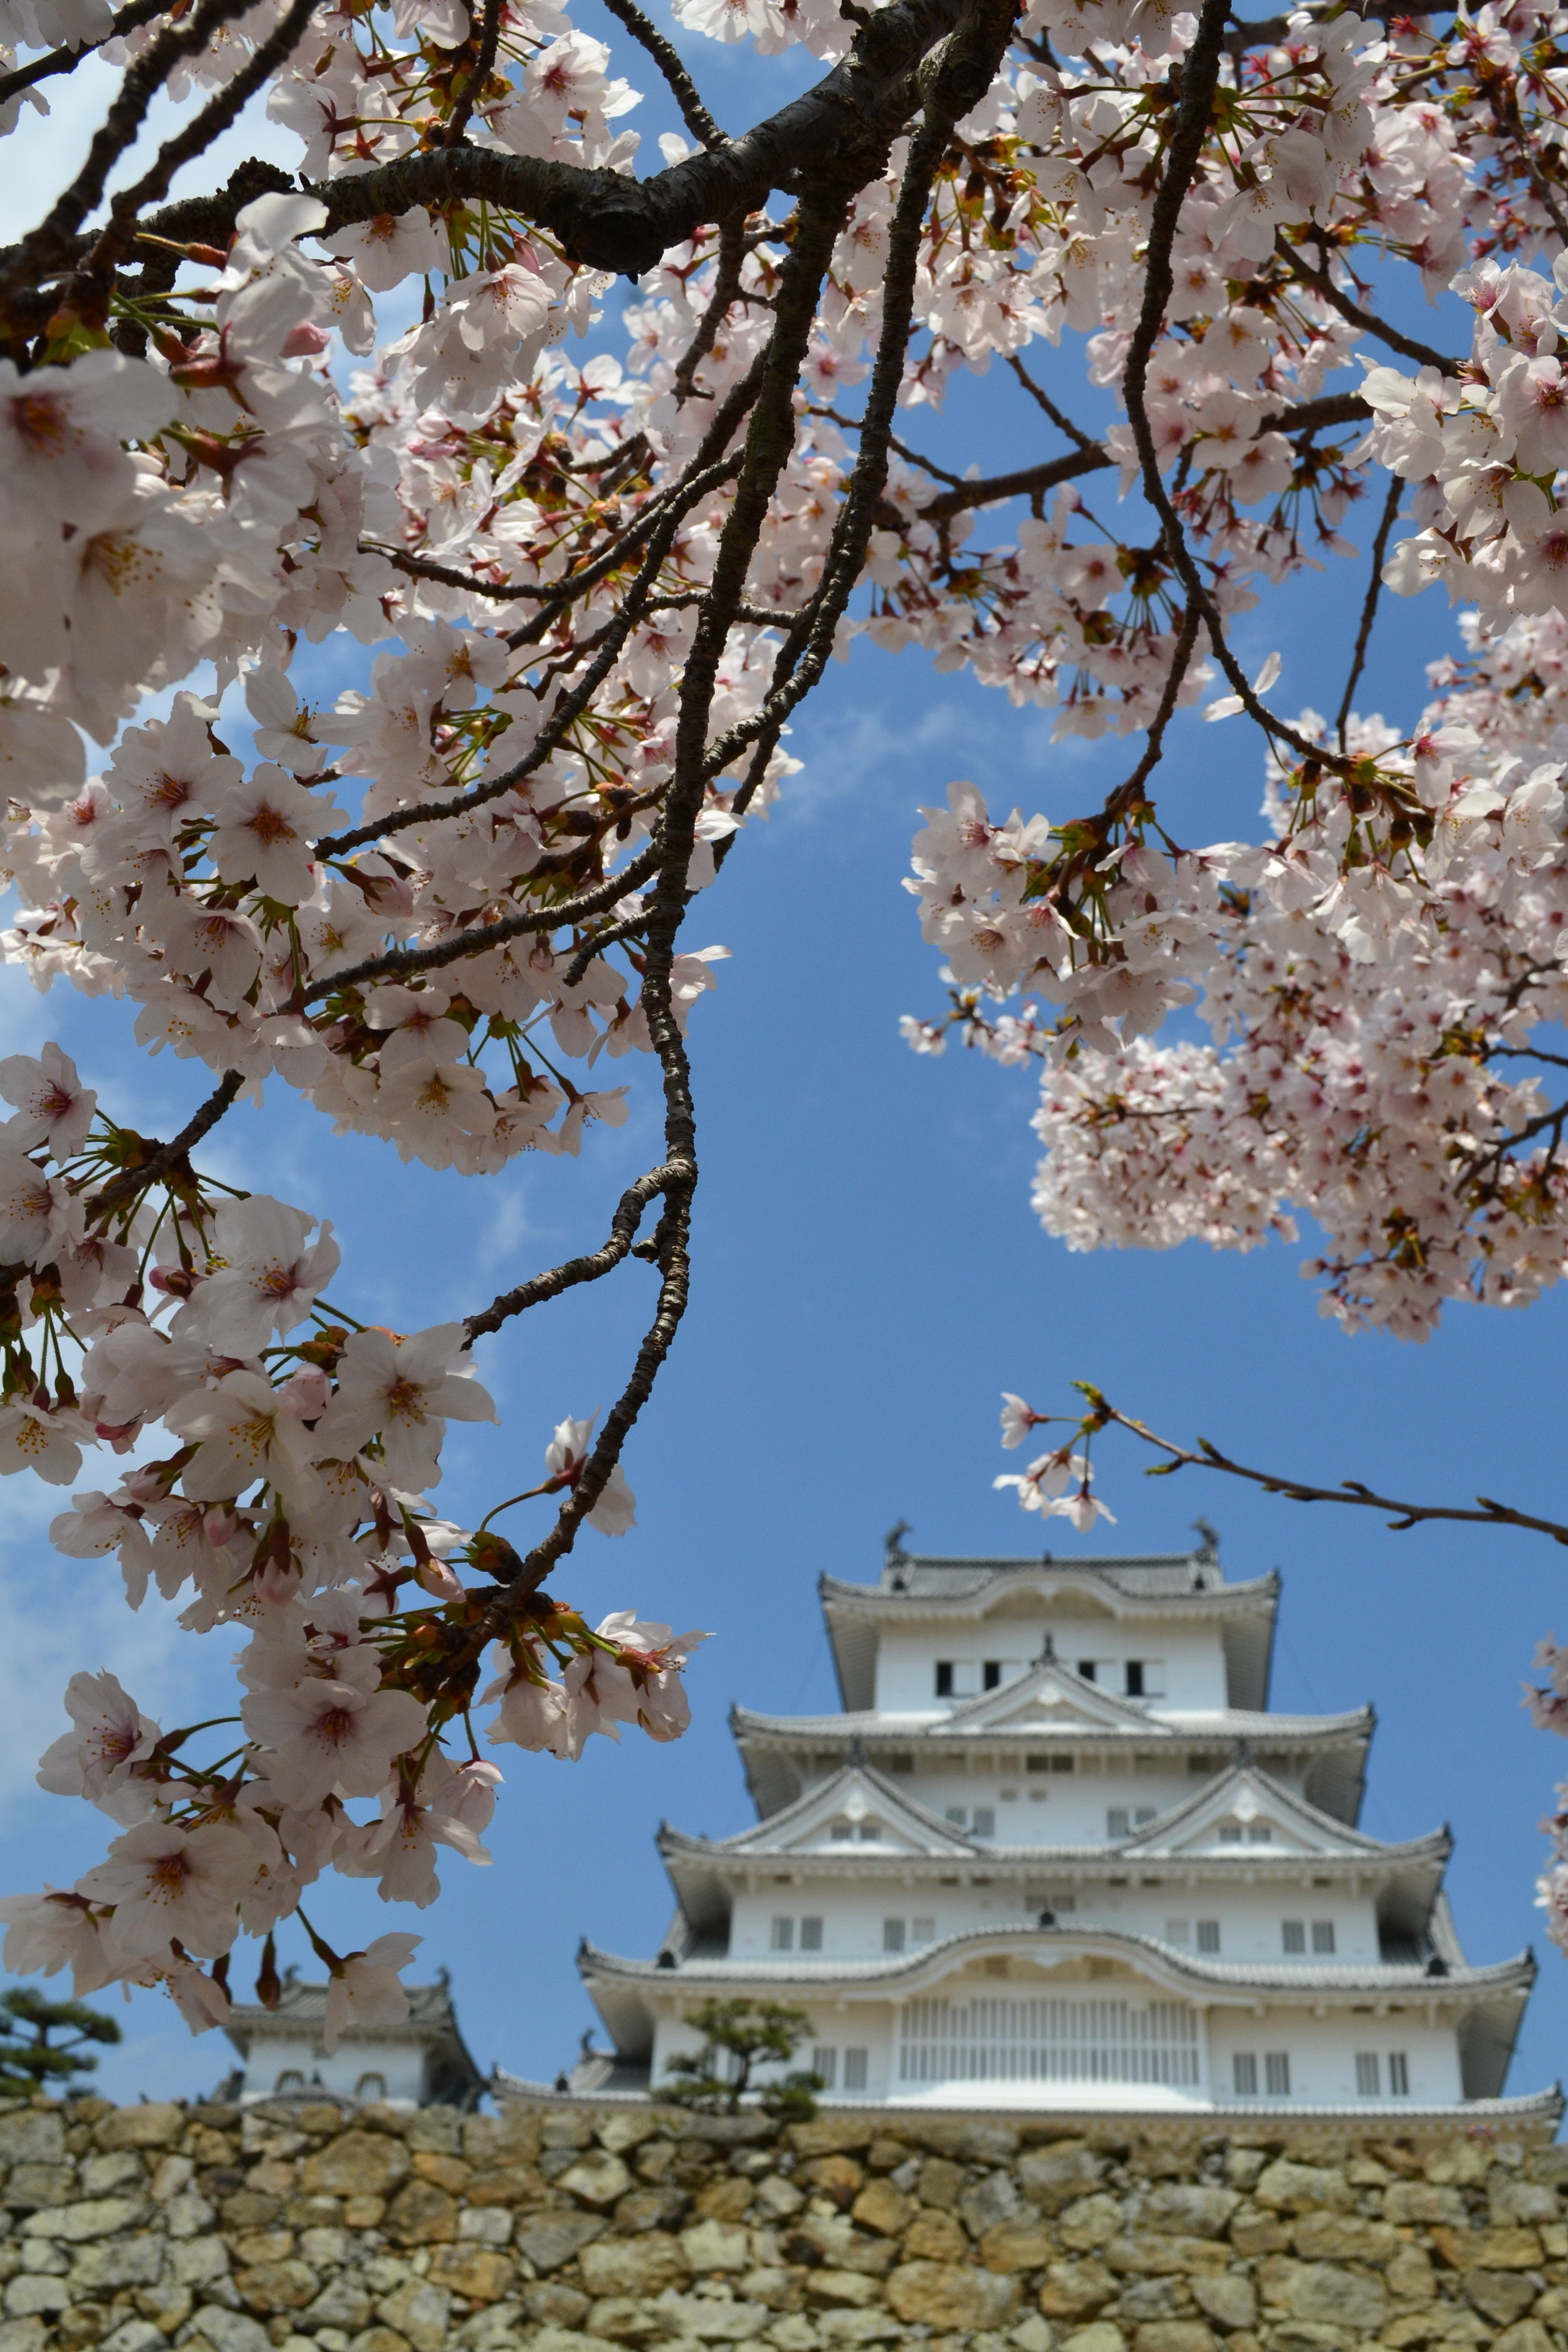 Another look at the castle but just a little bit closer. Aren't the cherry blossoms gorgeous?